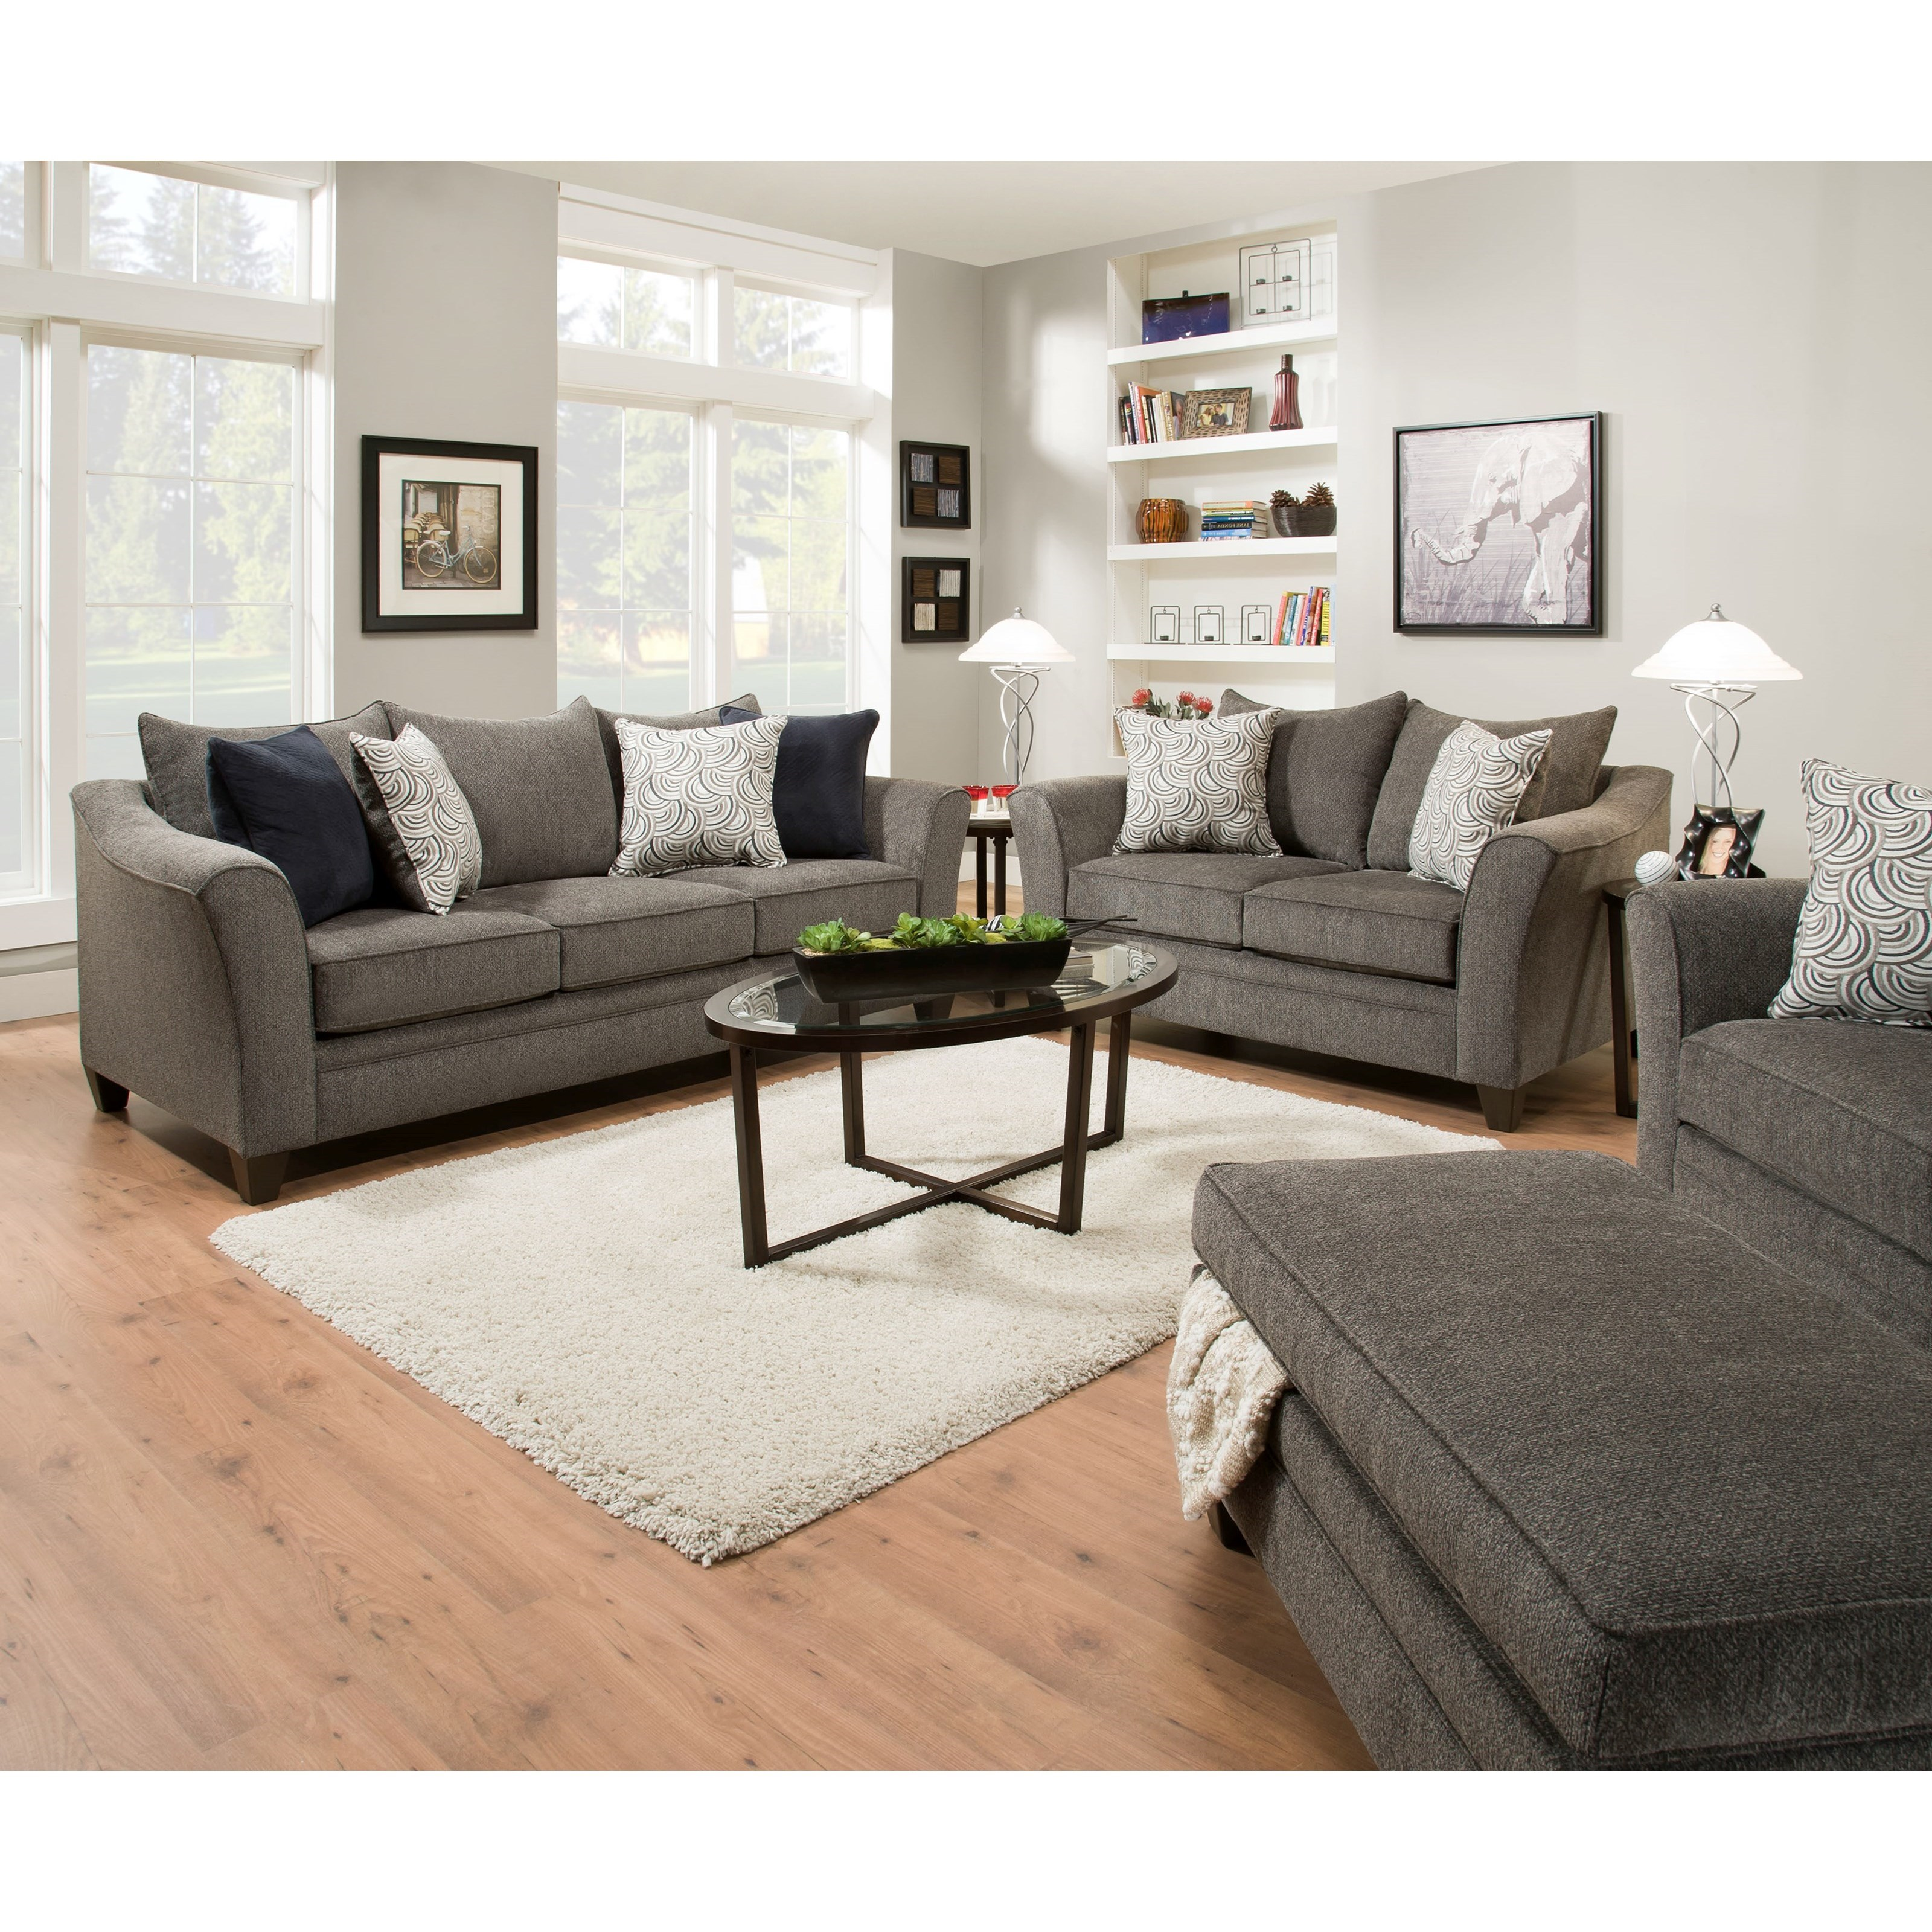 Kiara Living Room Group by Umber at EFO Furniture Outlet